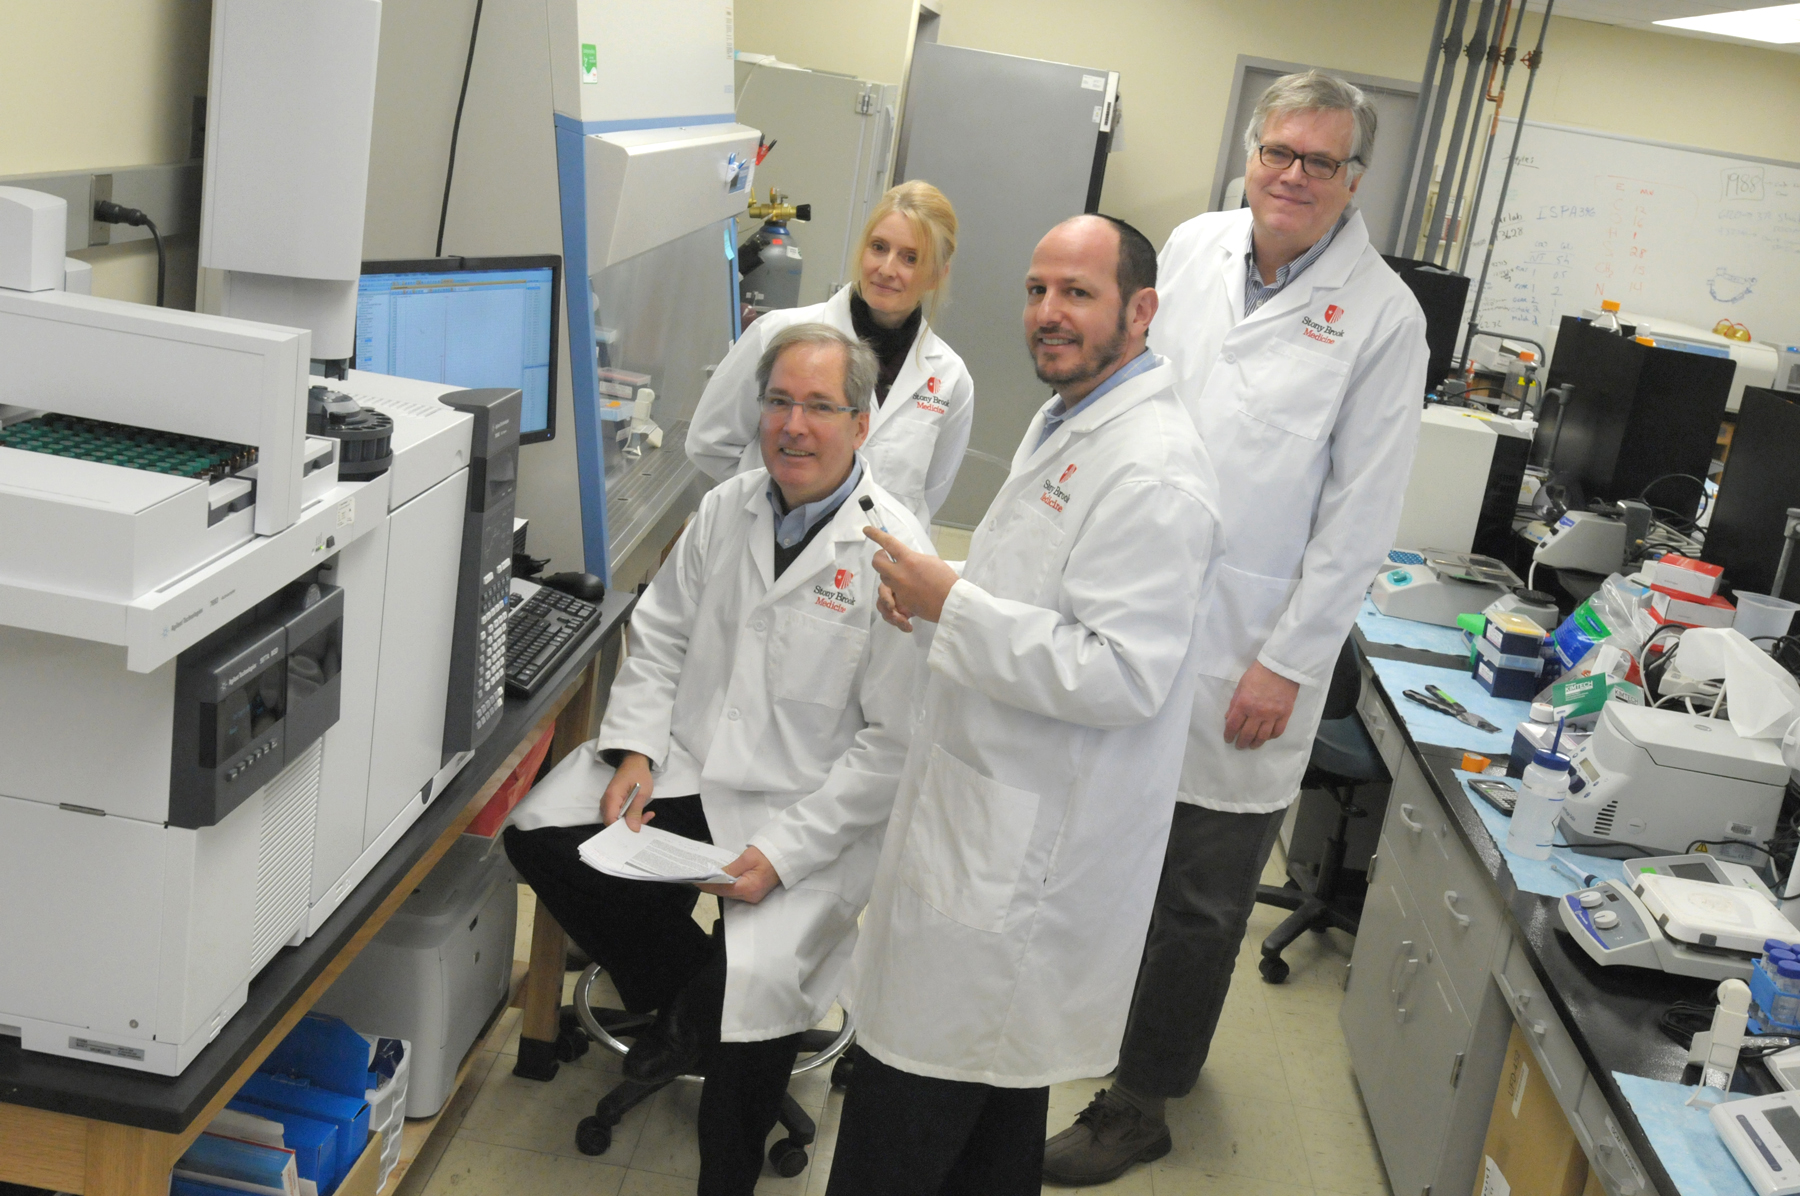 Stony Brook Cancer Center research pathologists, pictured in front, from left: John Haley, PhD, and Geoffrey Girnun, PhD. In back: Patricia Thompson, PhD, and Scott Powers, PhD.